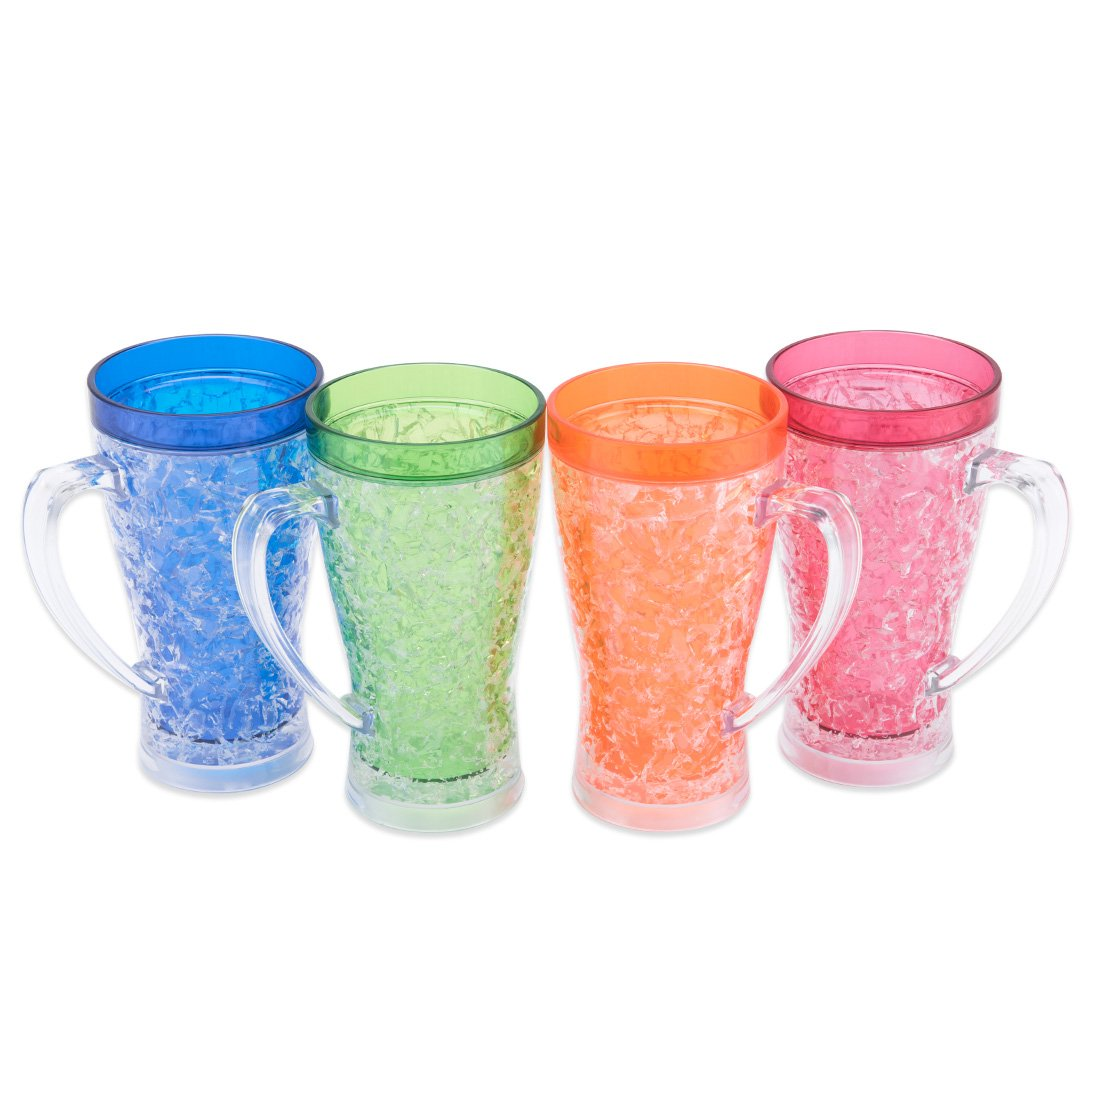 Freezer Mugs, Double Wall Gel Frozen Drinking Cup Frosty Cups with Handles, Enjoying Beer, Soda Lemonade, Water at Parties, Outside Activity(Set of 4, Each for 14 oz)